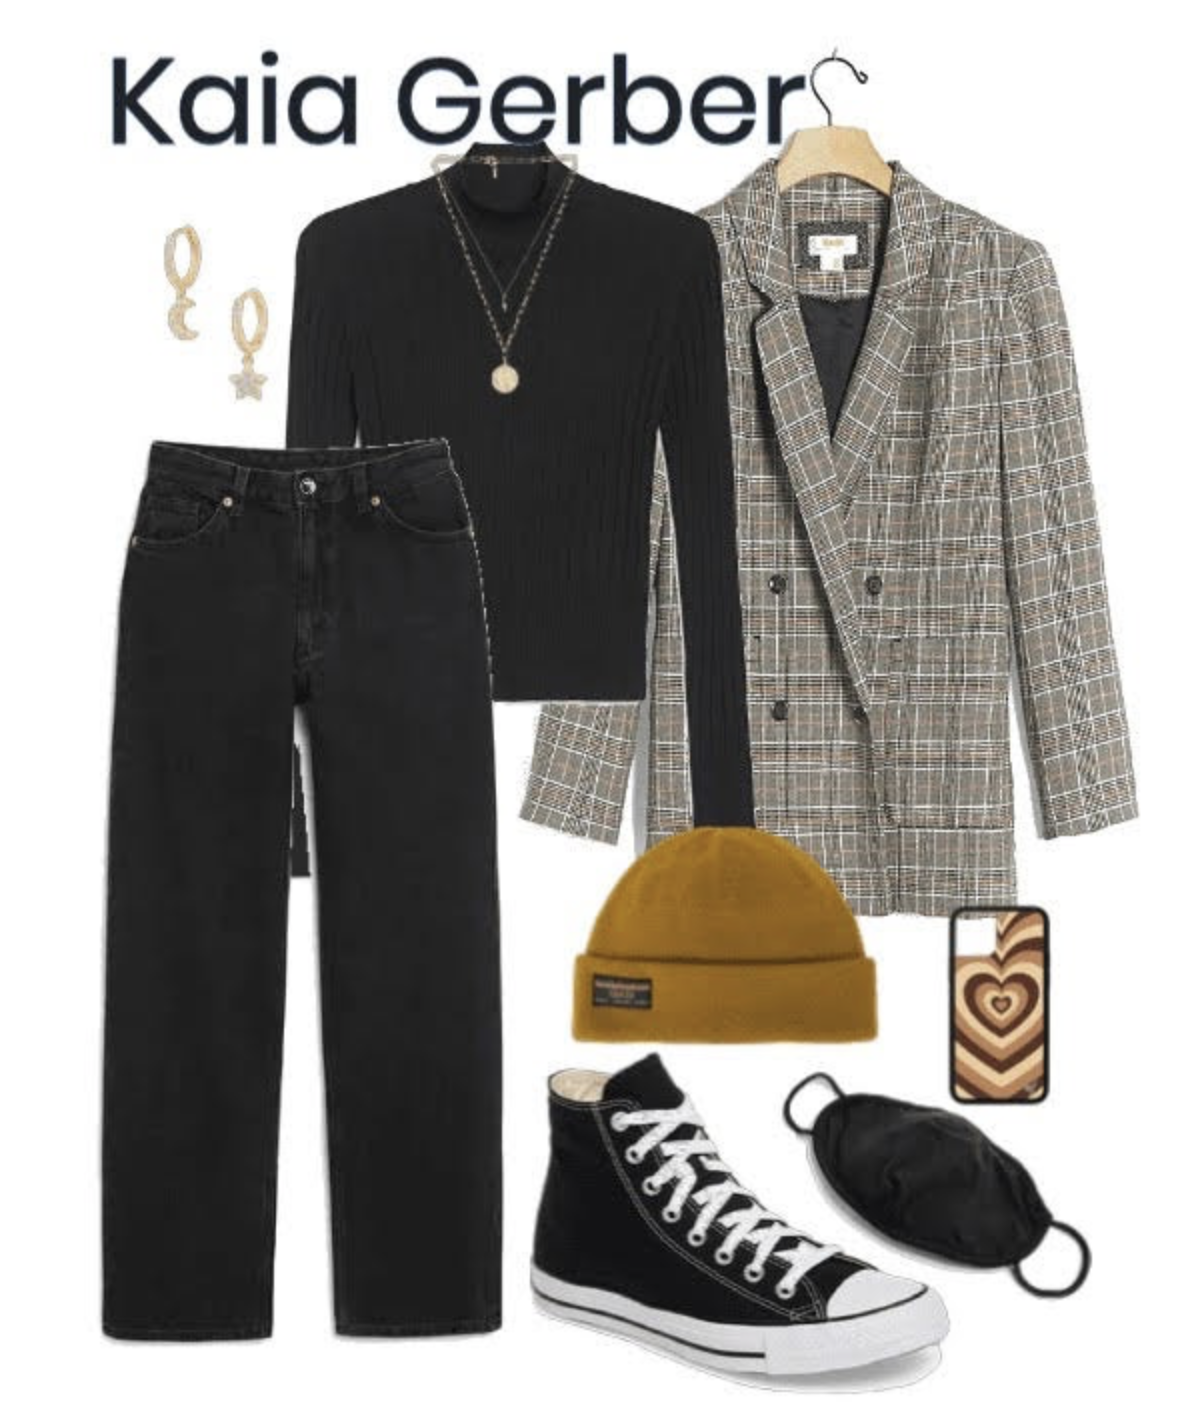 Outfit inspired by Kaia Gerber.